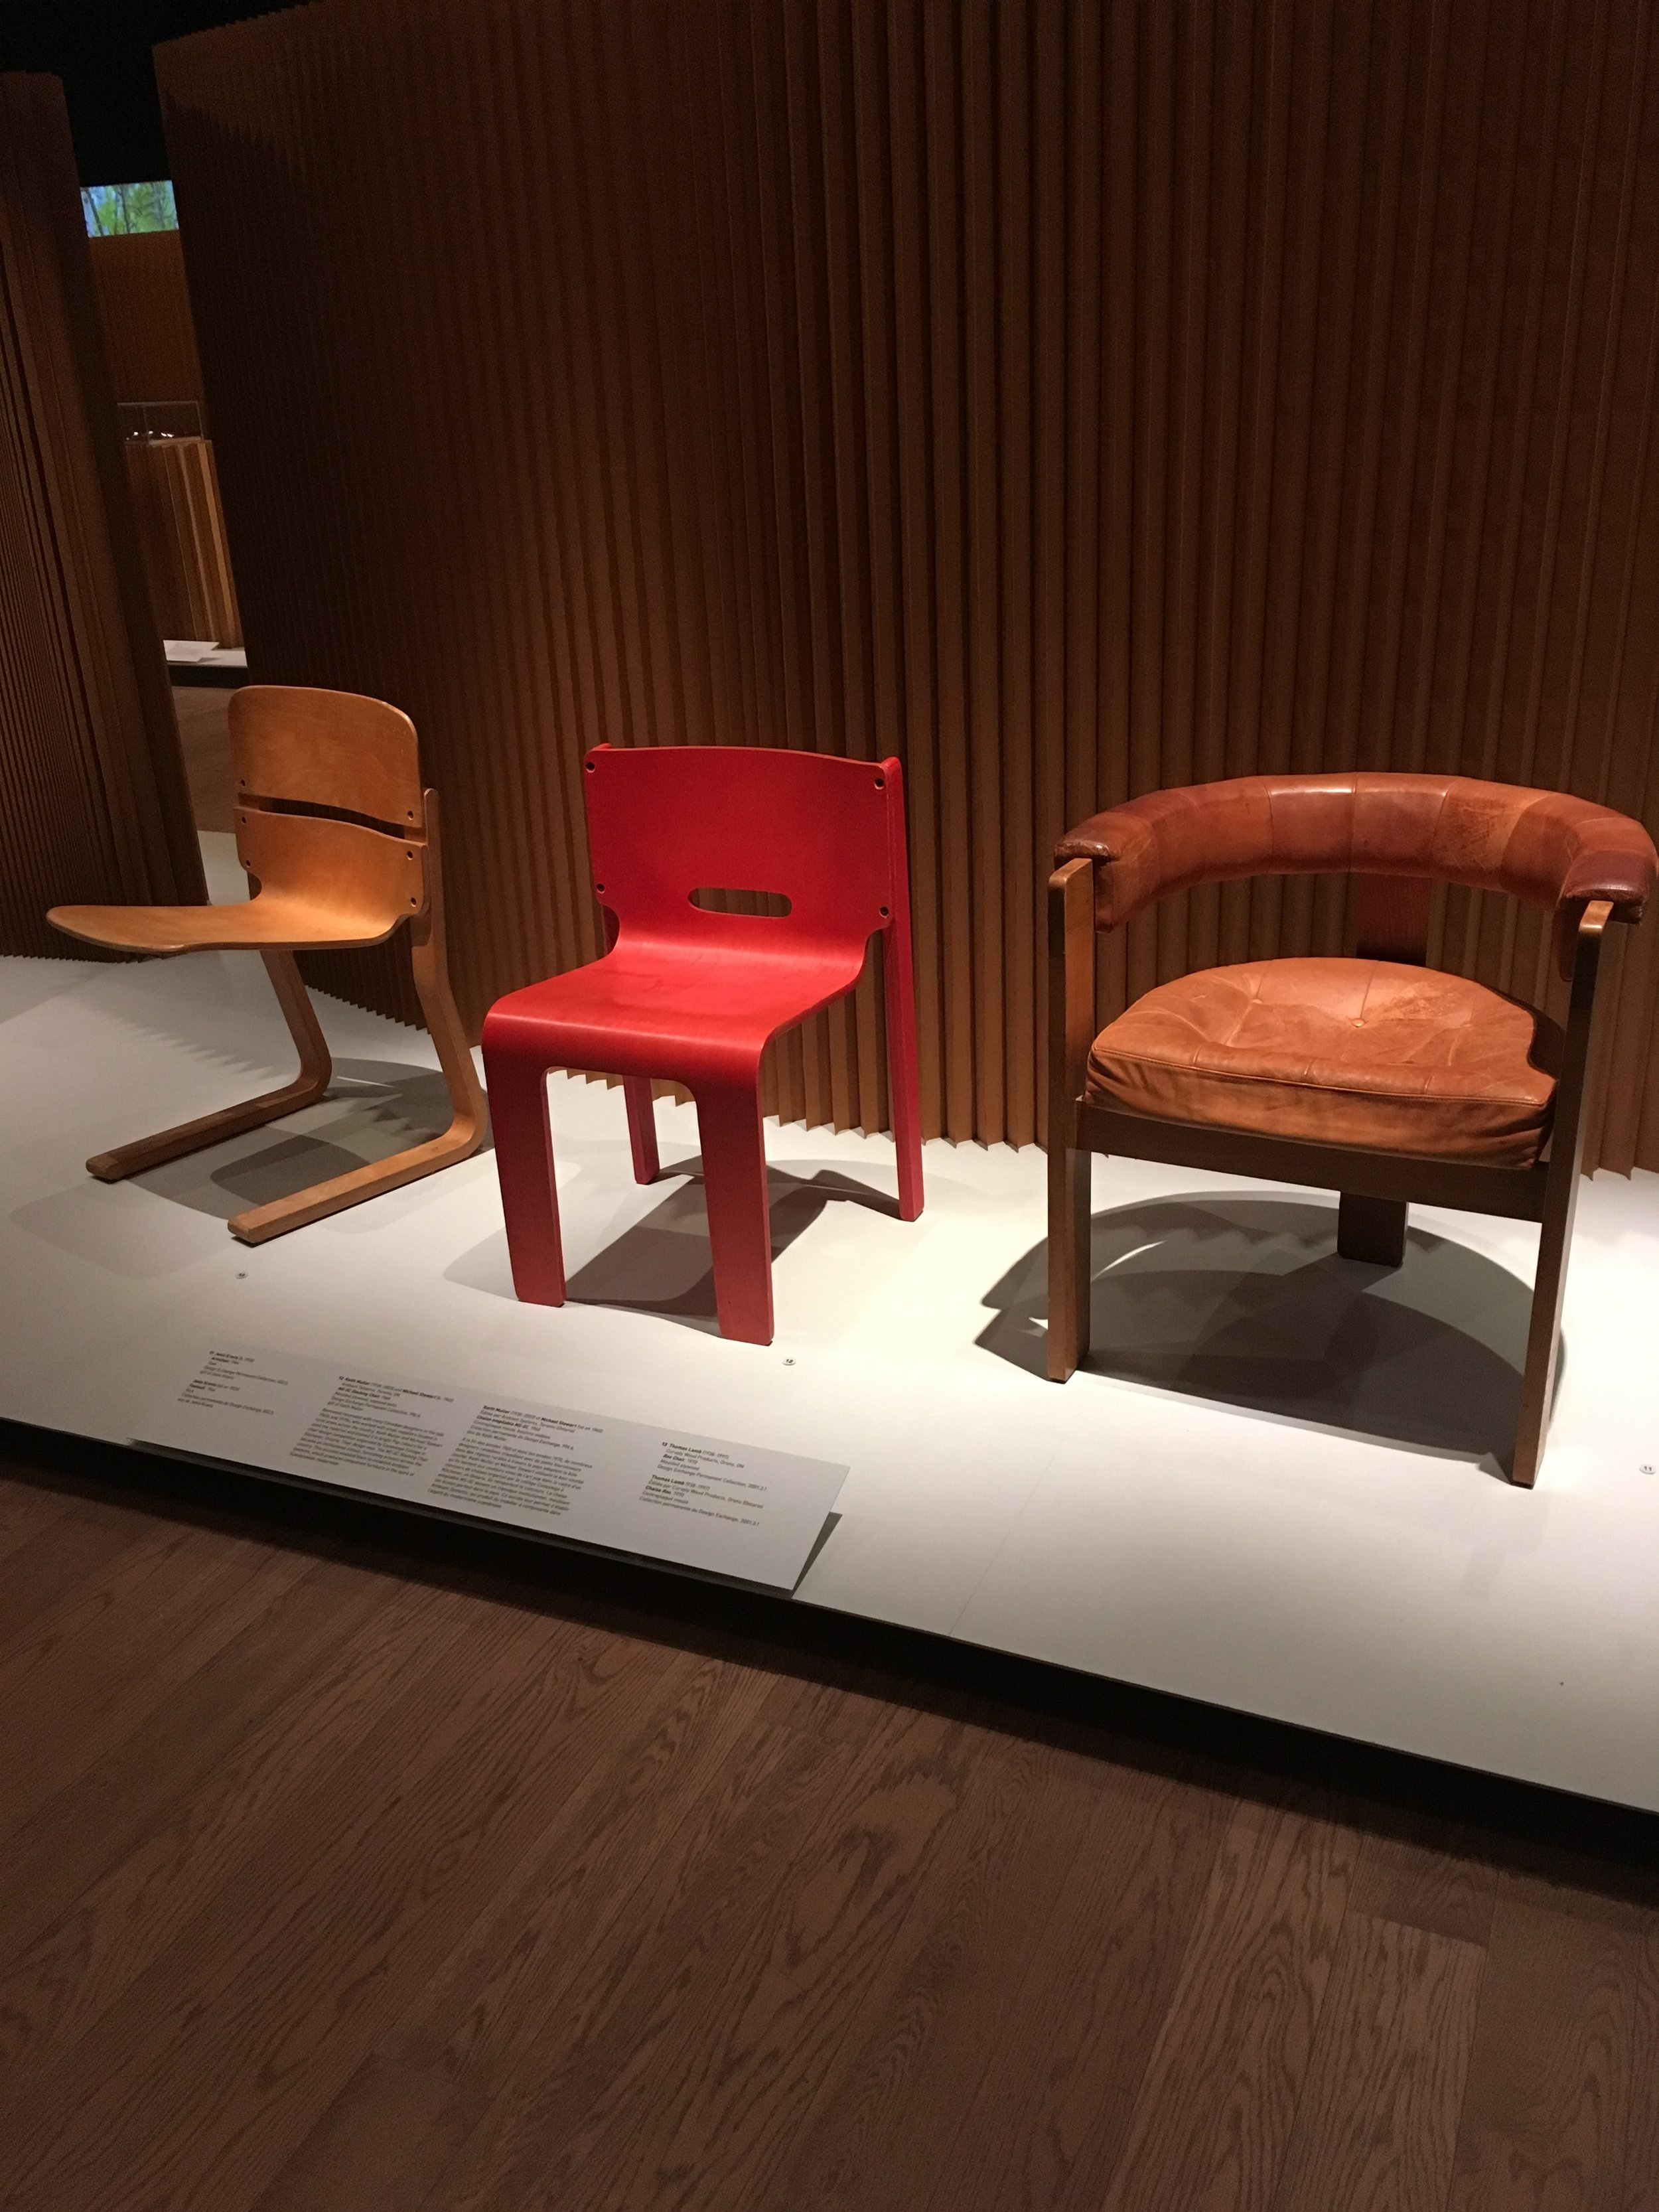 I'm not a fan of red, but I would allow this chair into my home. The one on the right with the tufted seat is my favourite though.